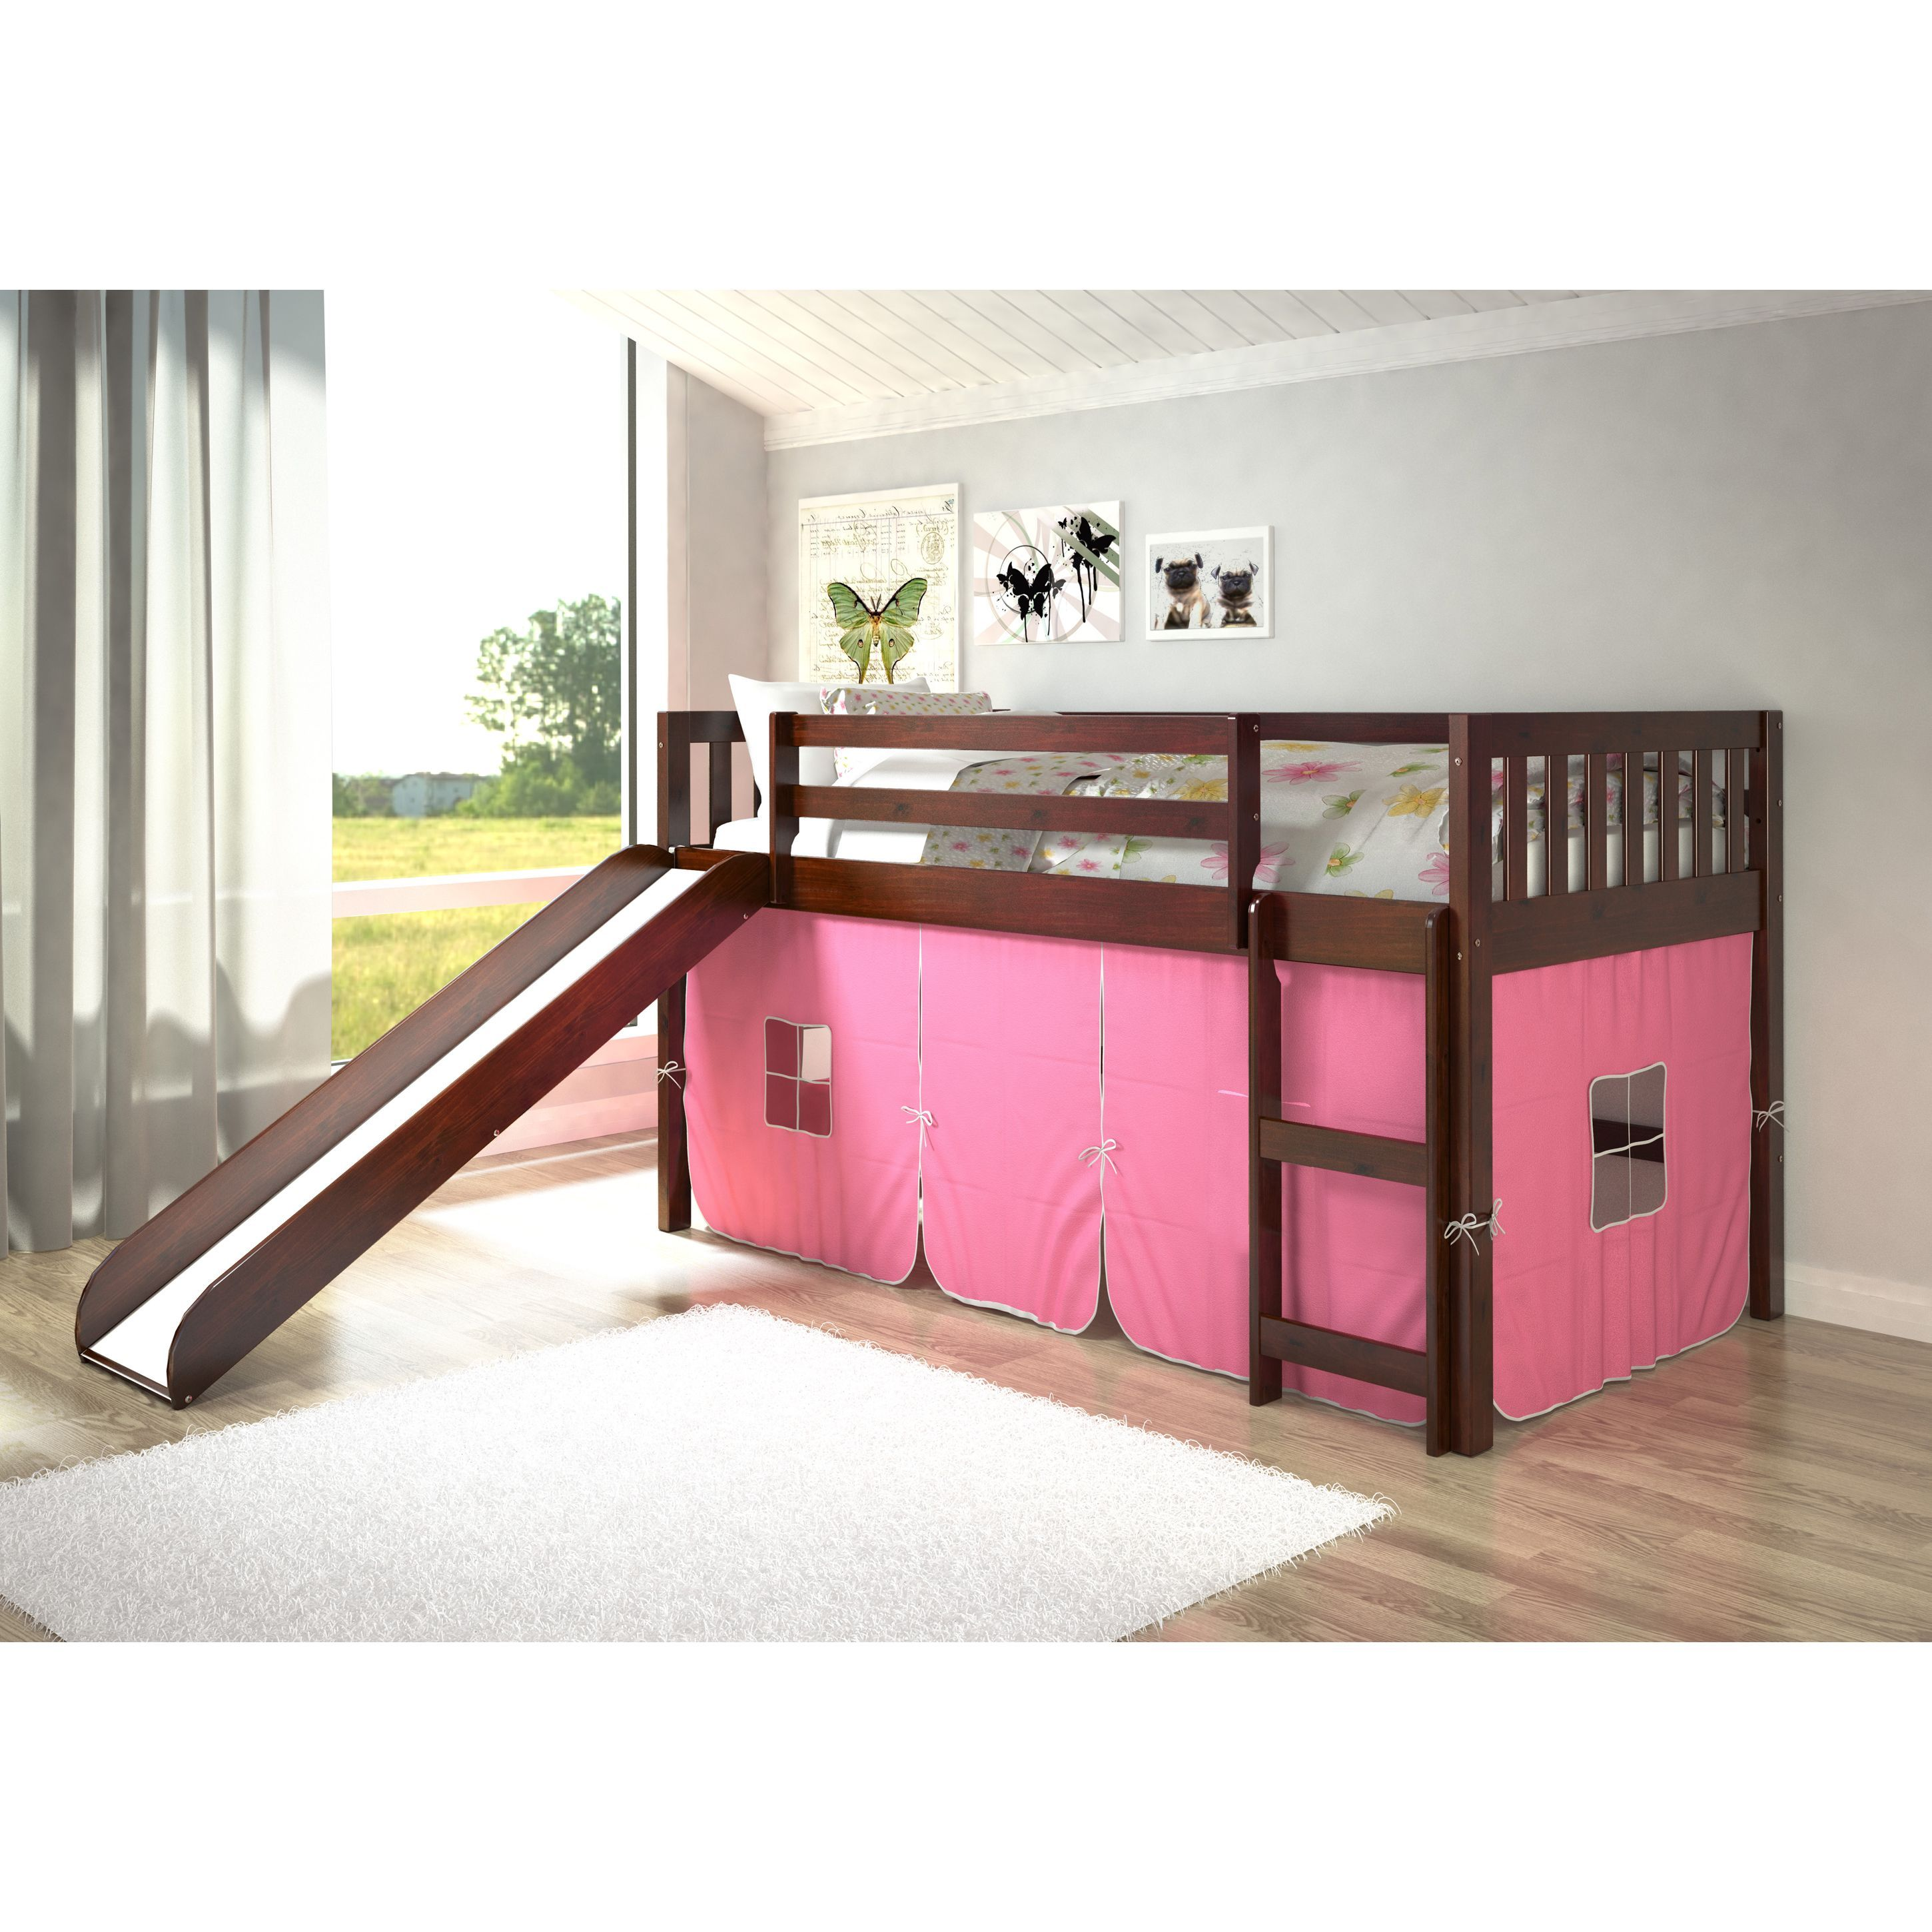 Wooden loft bed with slide  Donco Kids Mission Tent Loft Dark Cappuccino Twin Bed with Slide